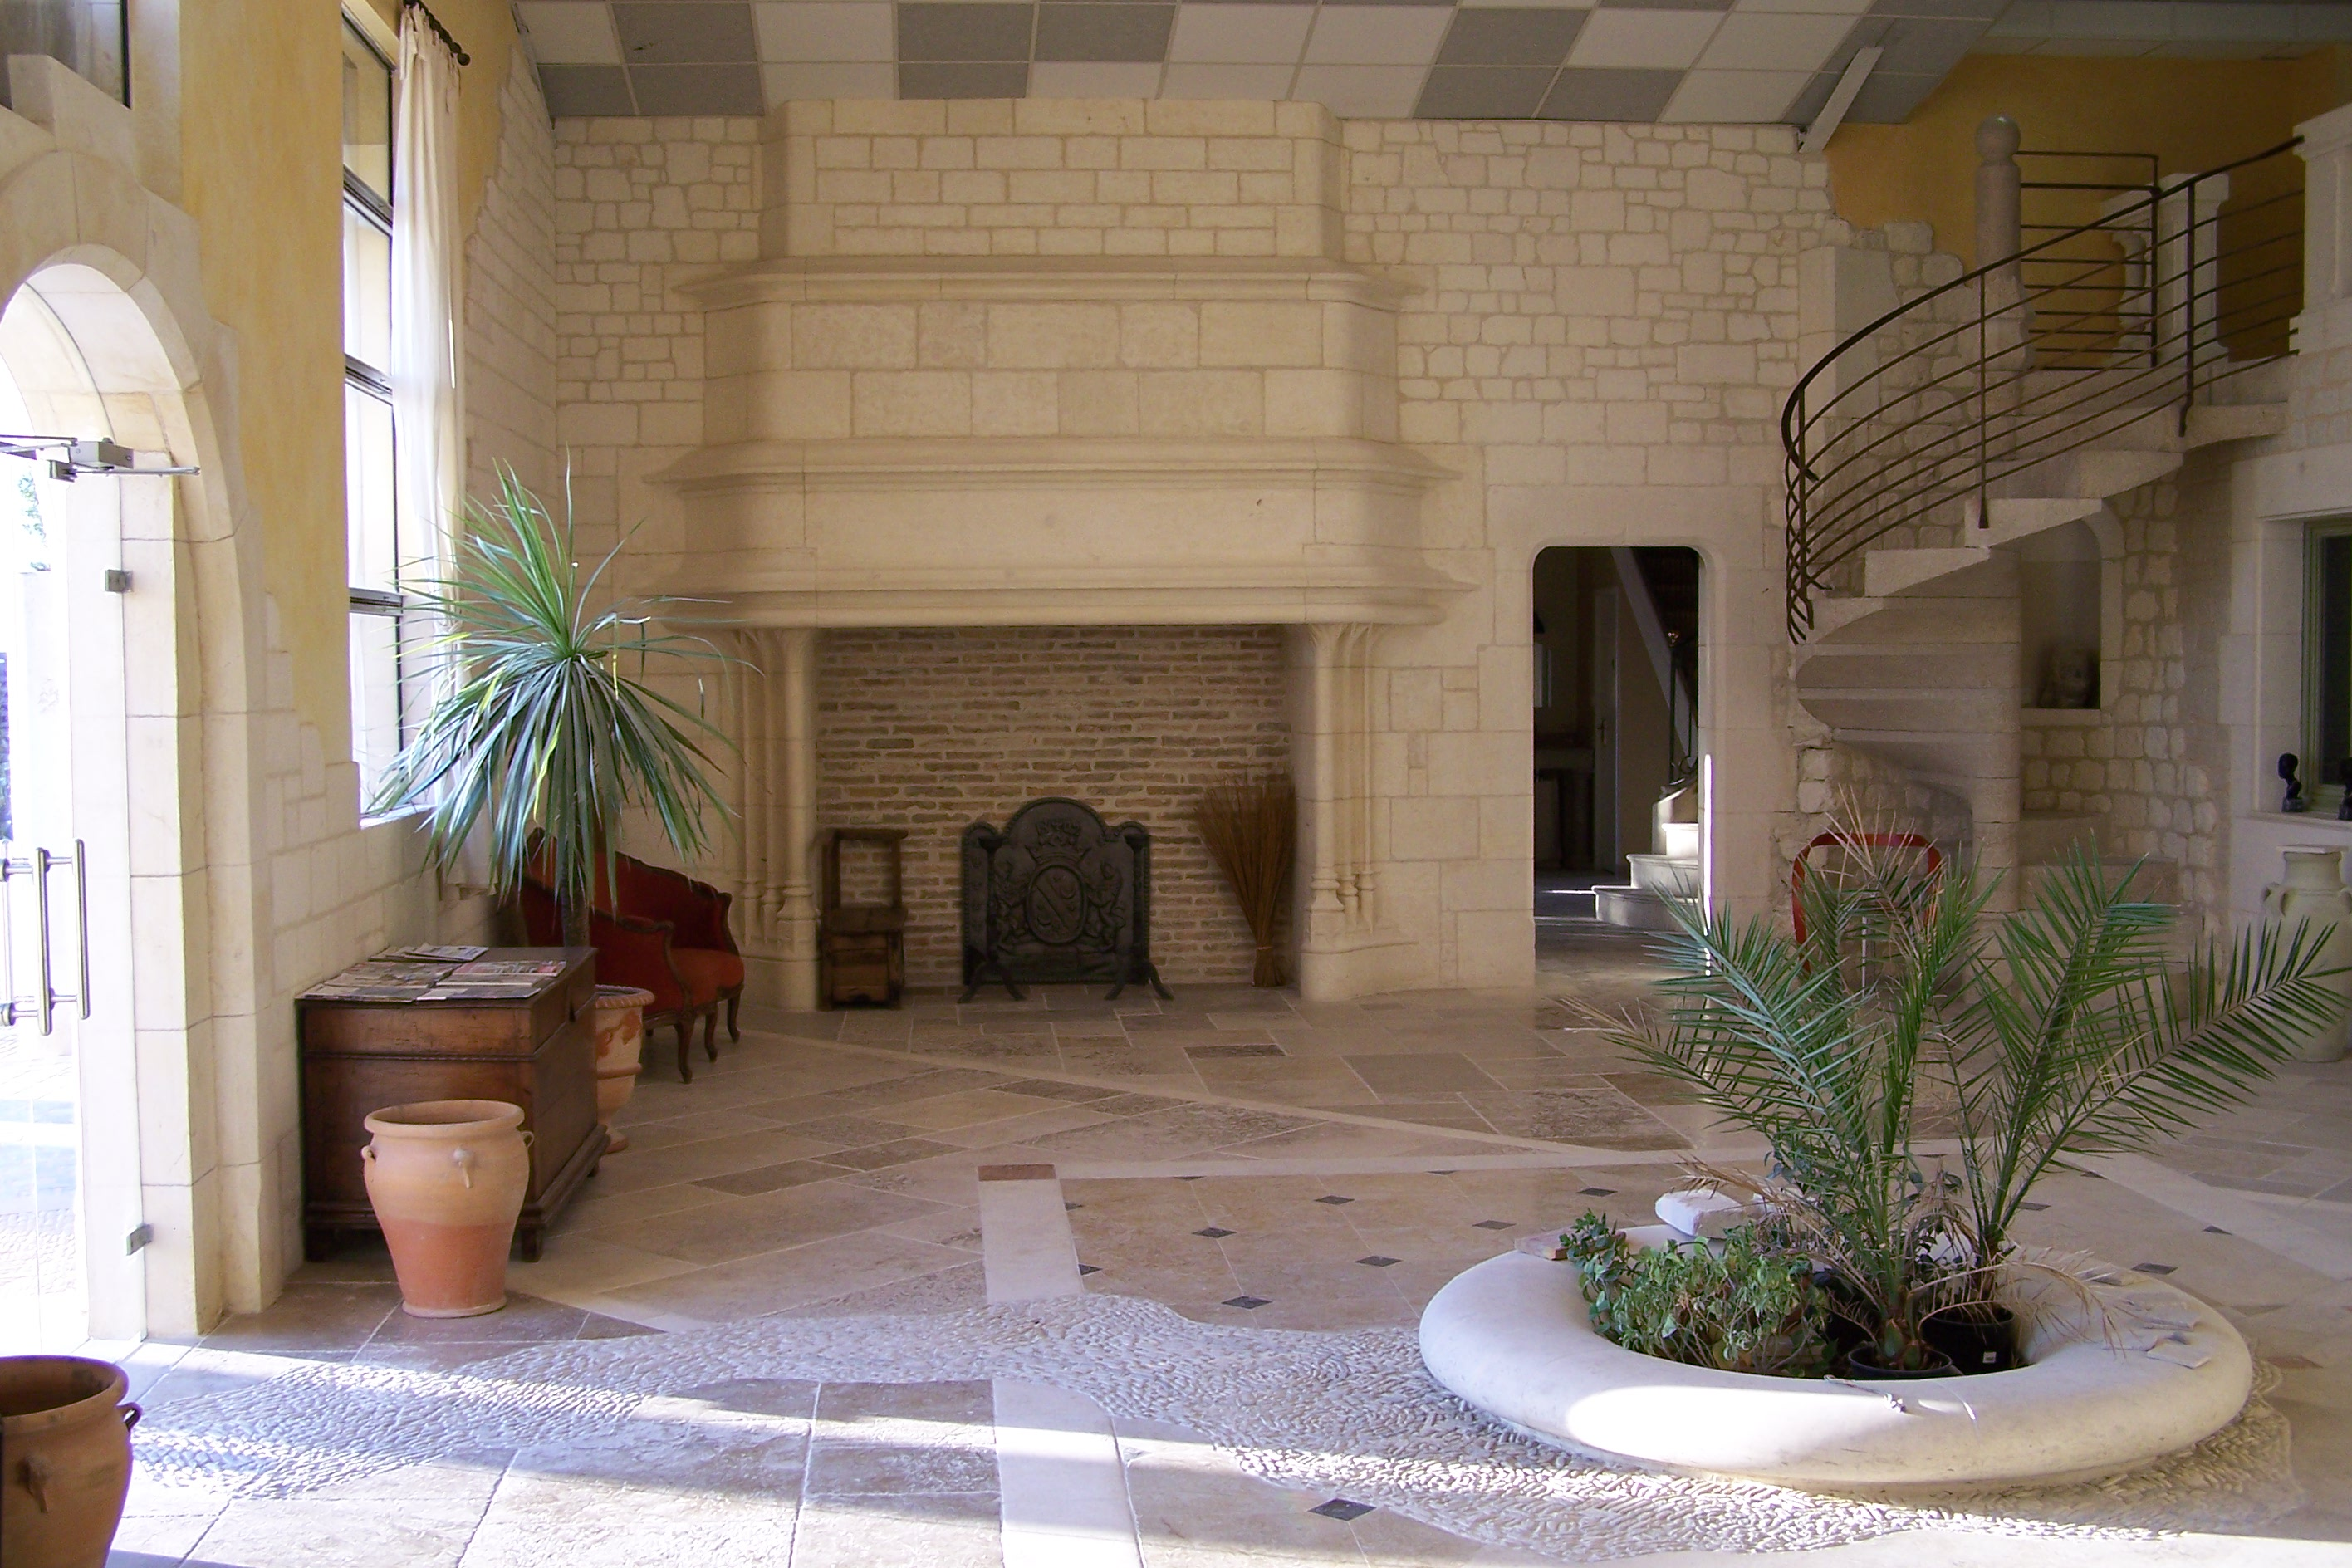 French Reclaimed LimeStone Flooring